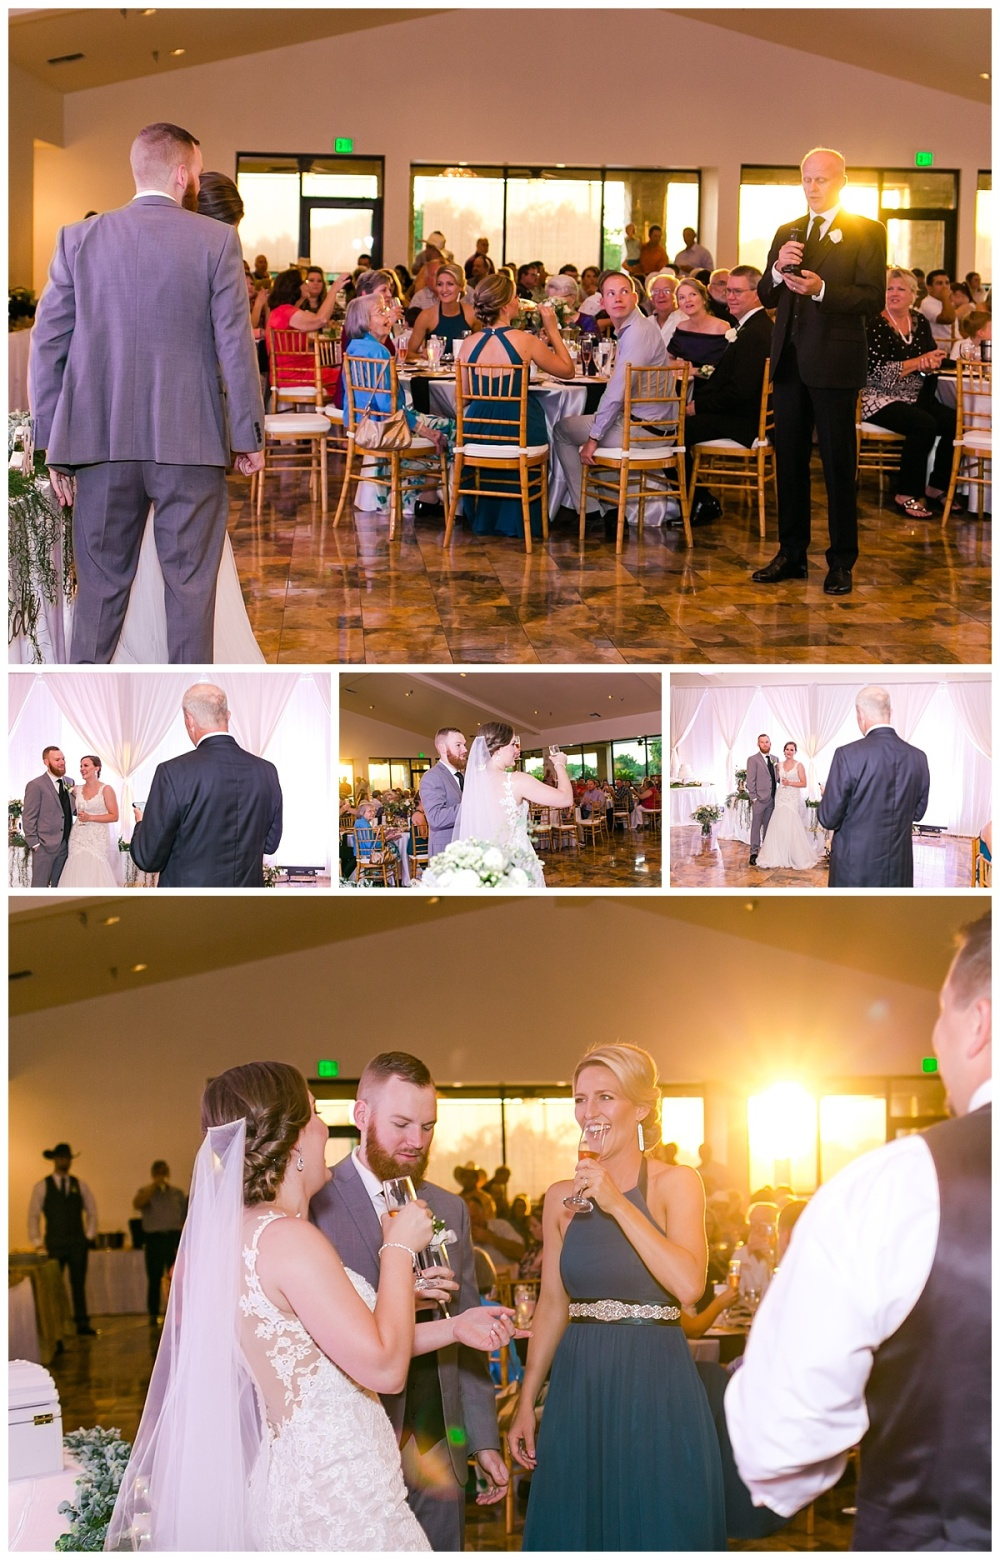 Carly-Barton-Photography-Wedding-Photos-Granberry-Hills-Event-Facility-Ryan-Chelsea-San-Antonio-Texas_0071.jpg